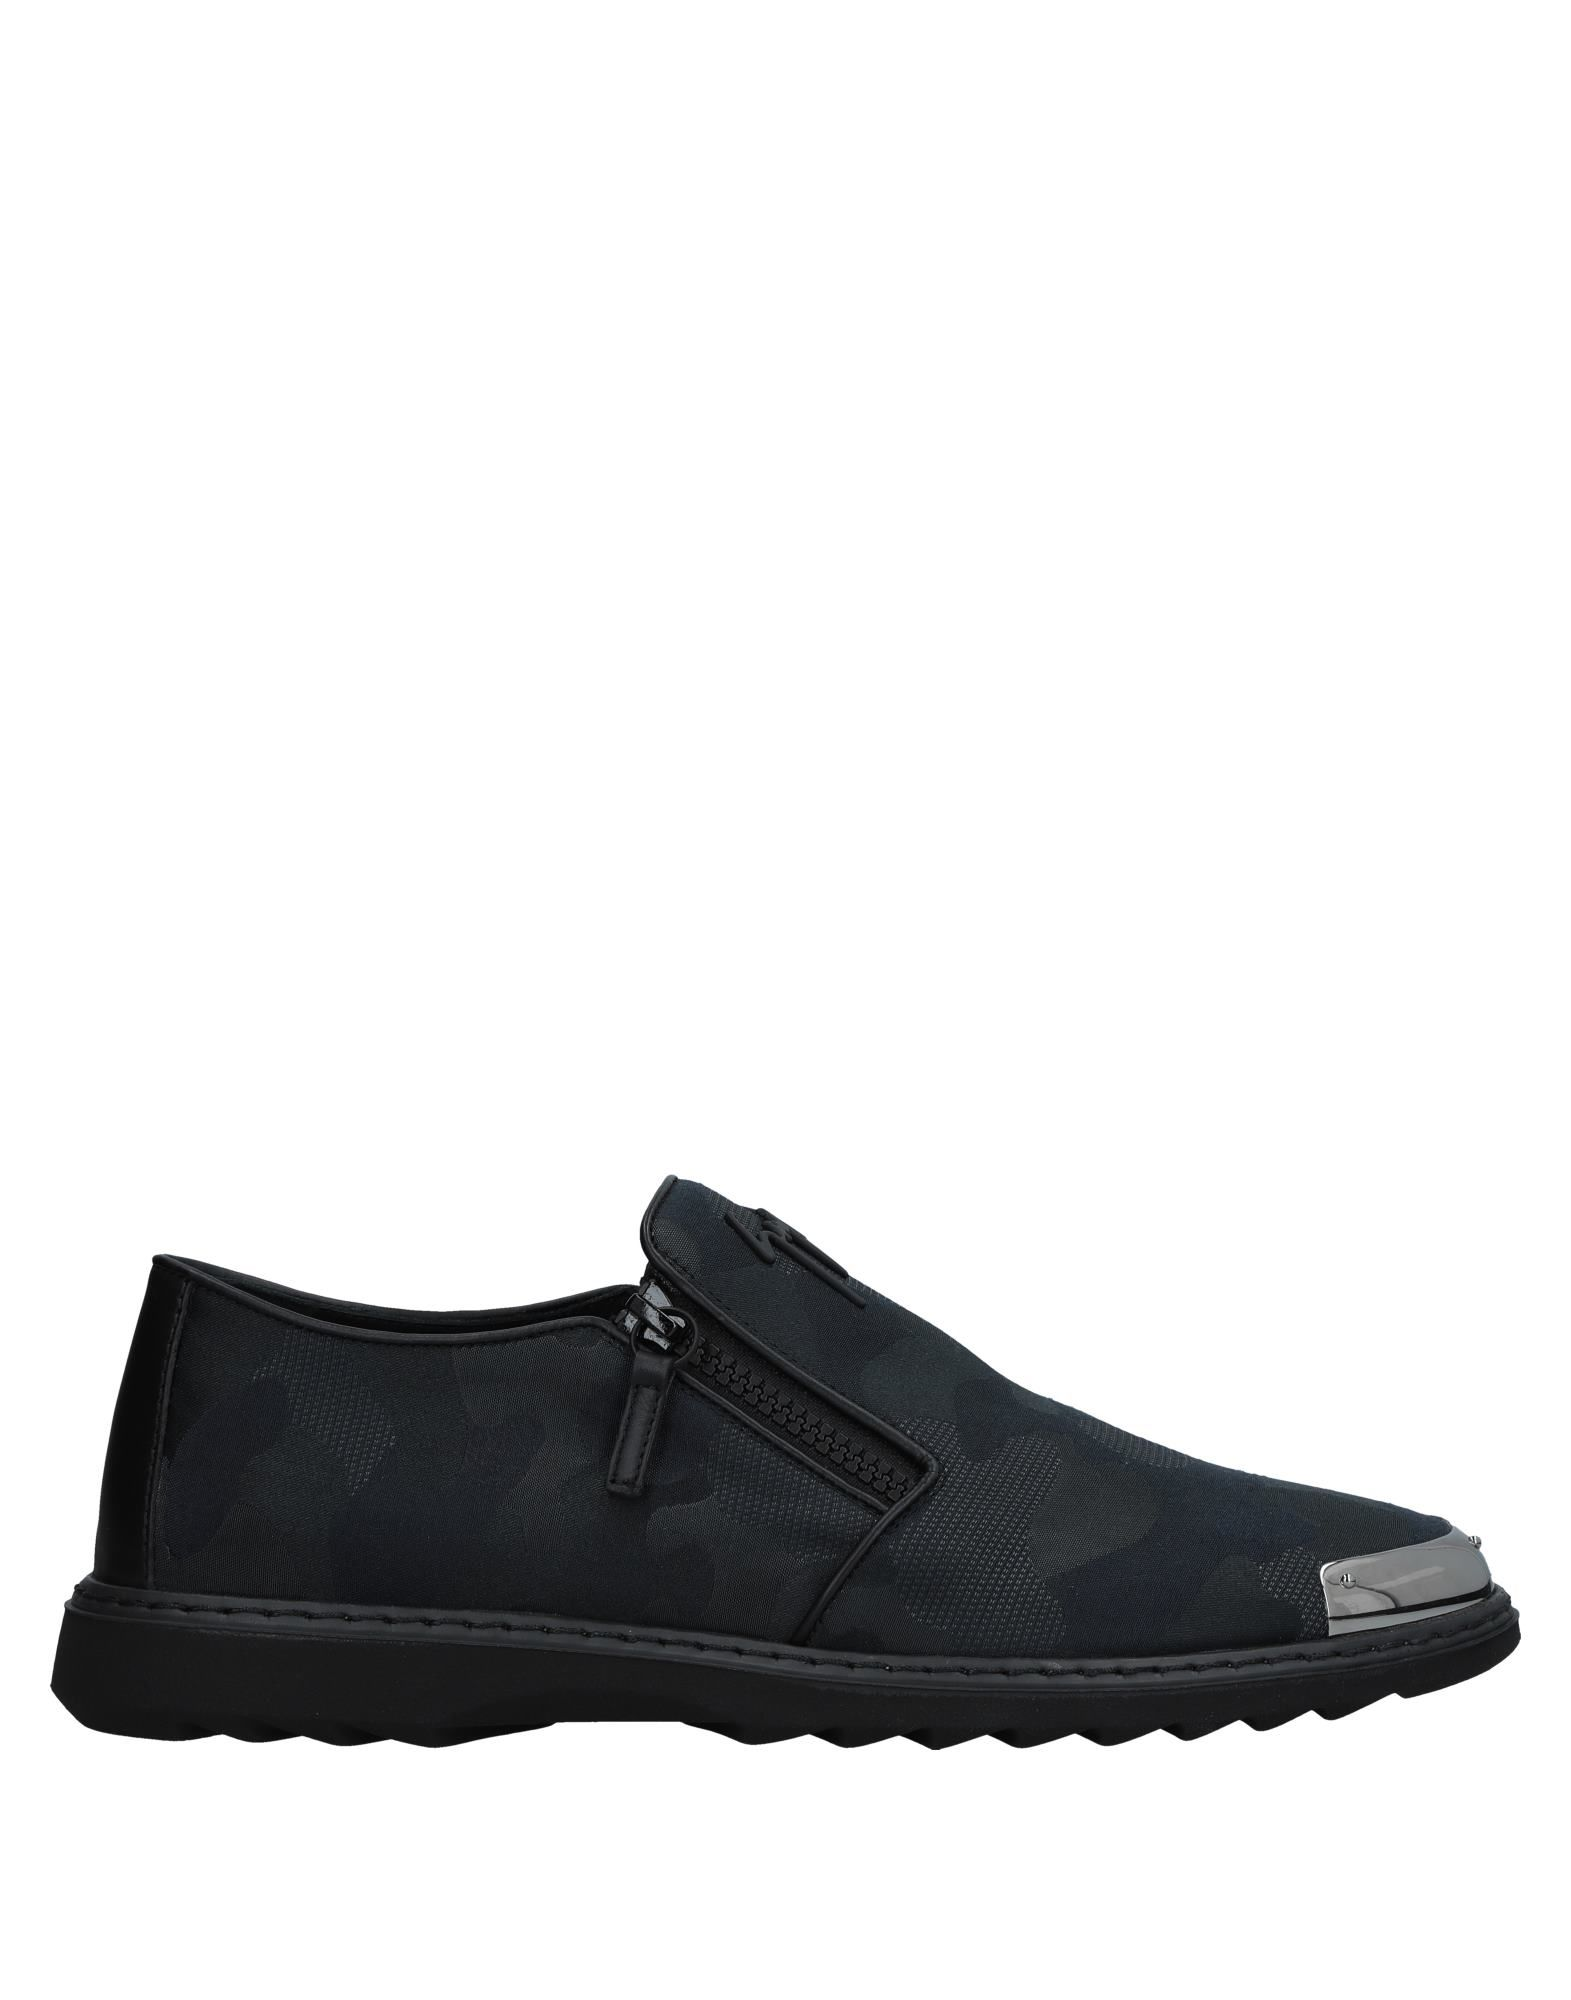 Sneakers Giuseppe Zanotti Homme - Sneakers Giuseppe Zanotti  Bleu foncé Chaussures casual sauvages